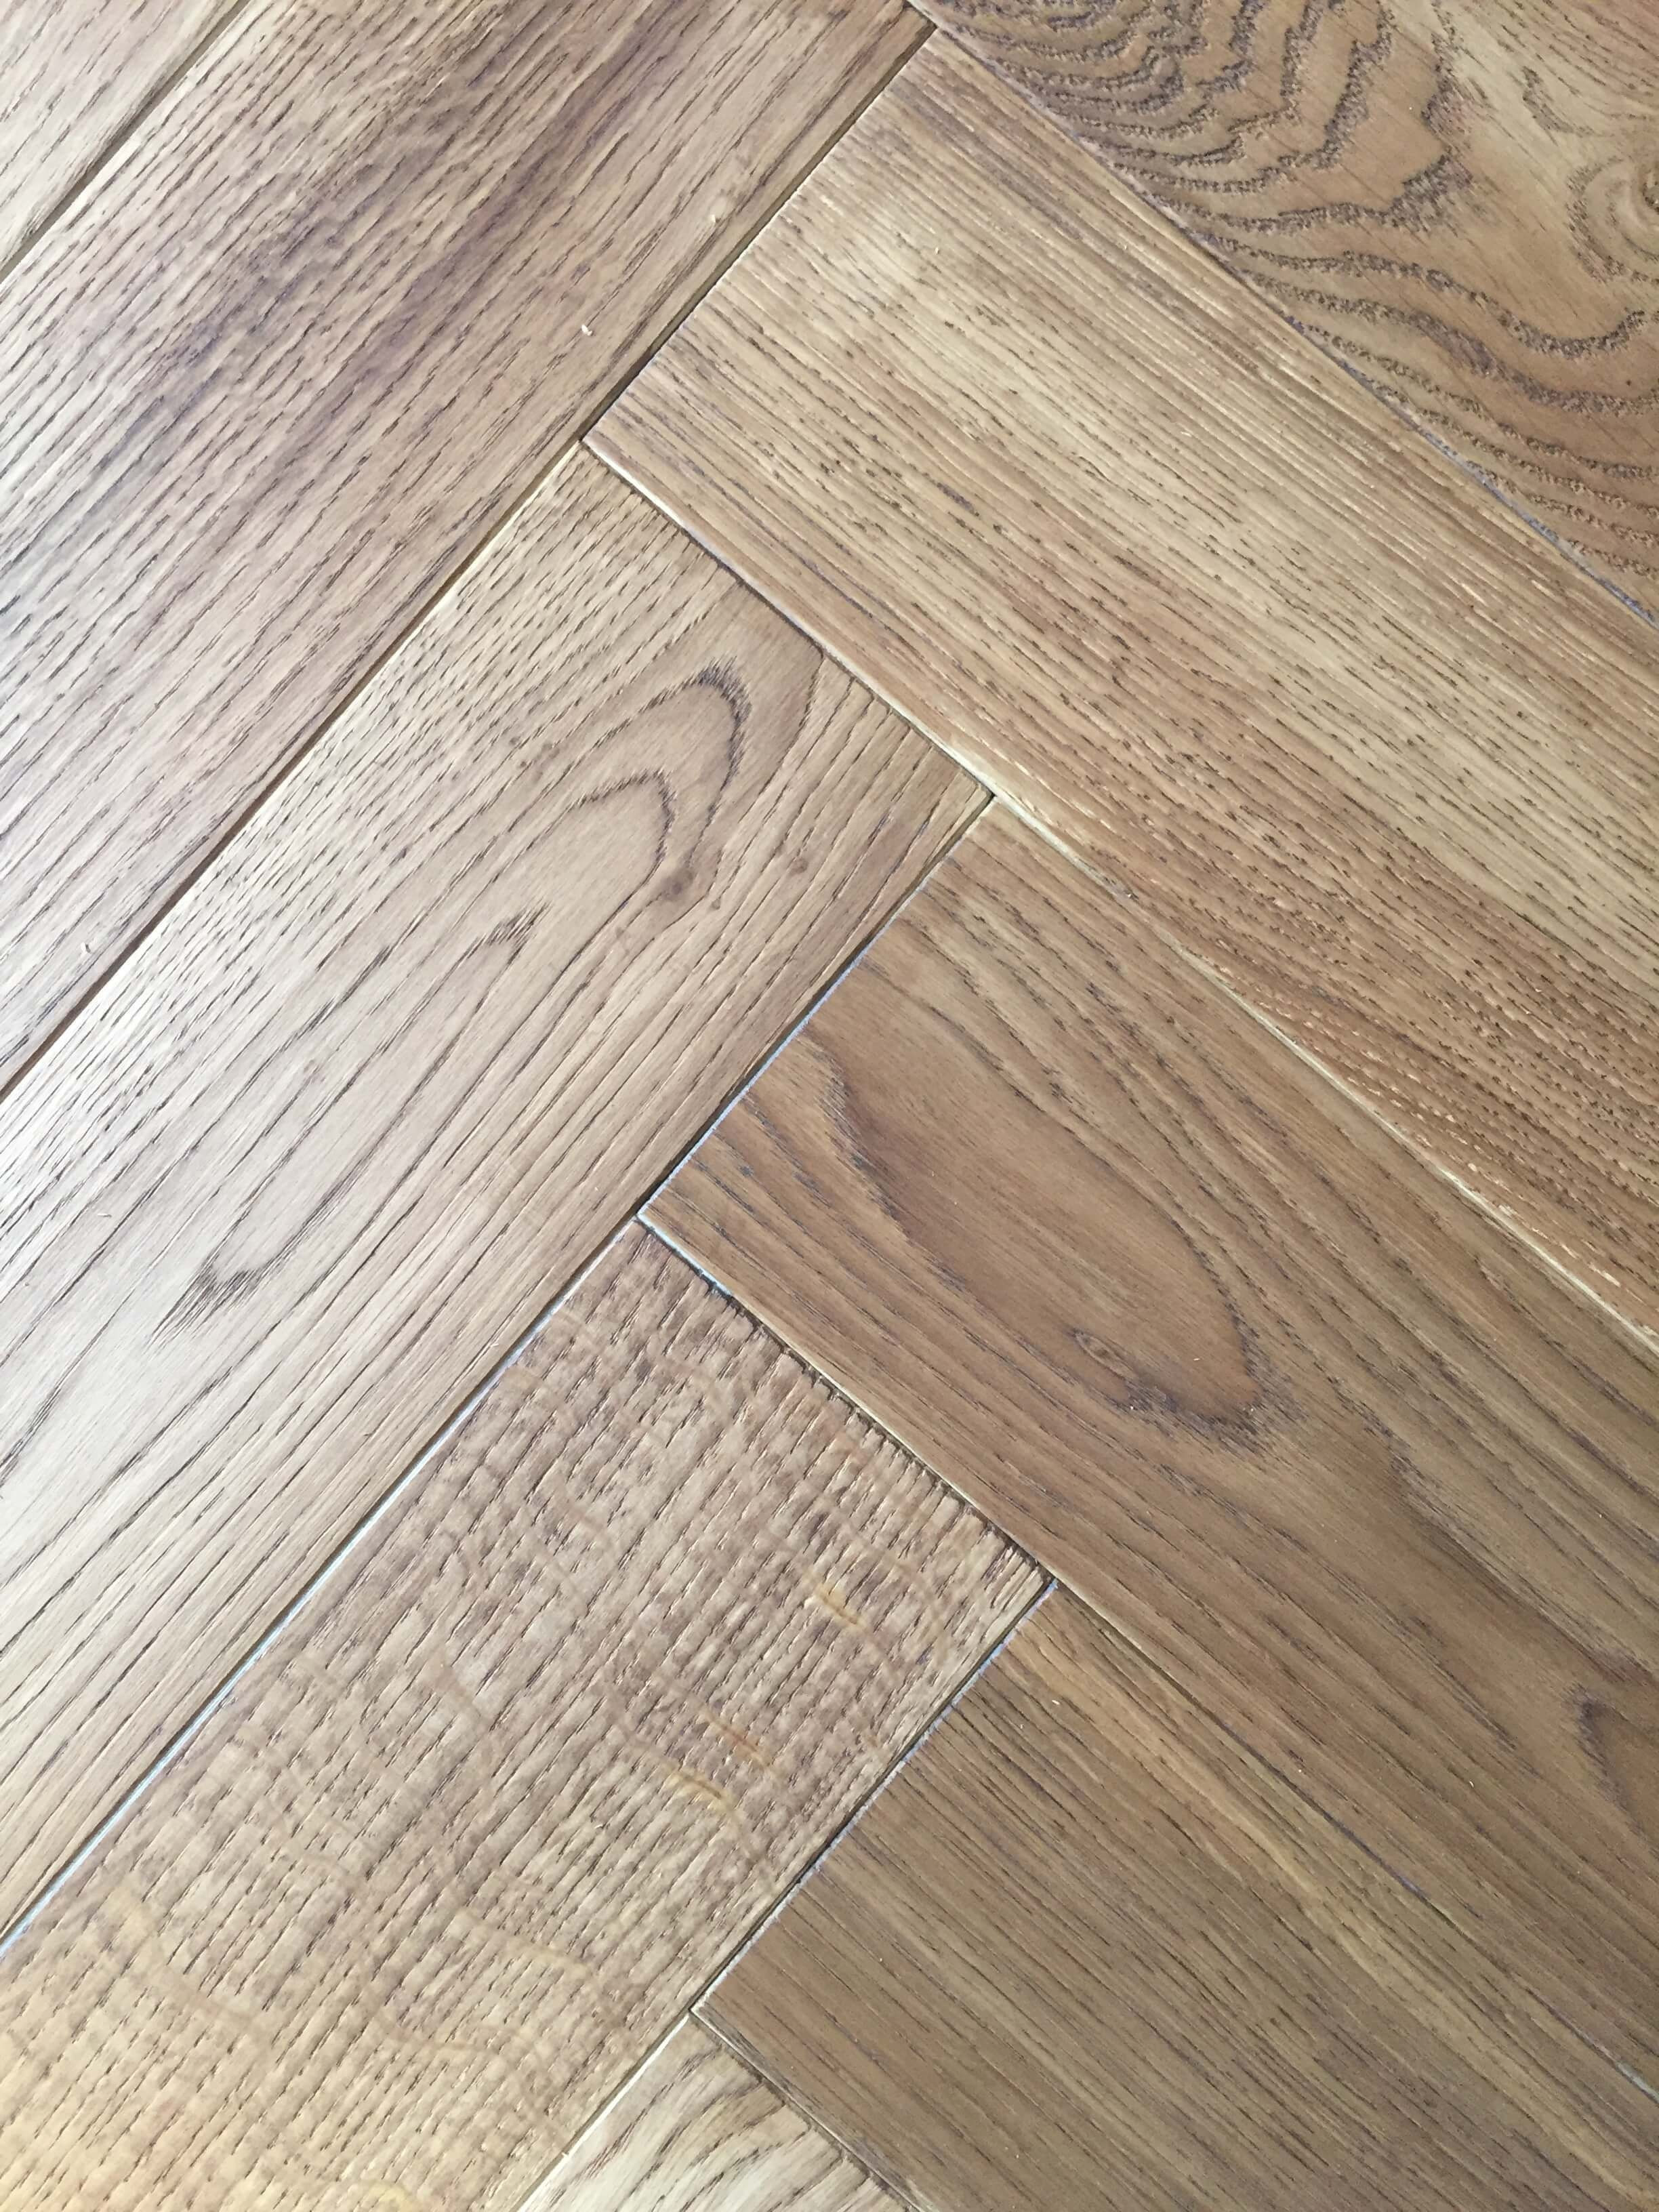 5 engineered hardwood flooring of handscraped engineered hardwood awesome engineered wood flooring with handscraped engineered hardwood awesome engineered wood flooring brown maple hand scraped engineered images